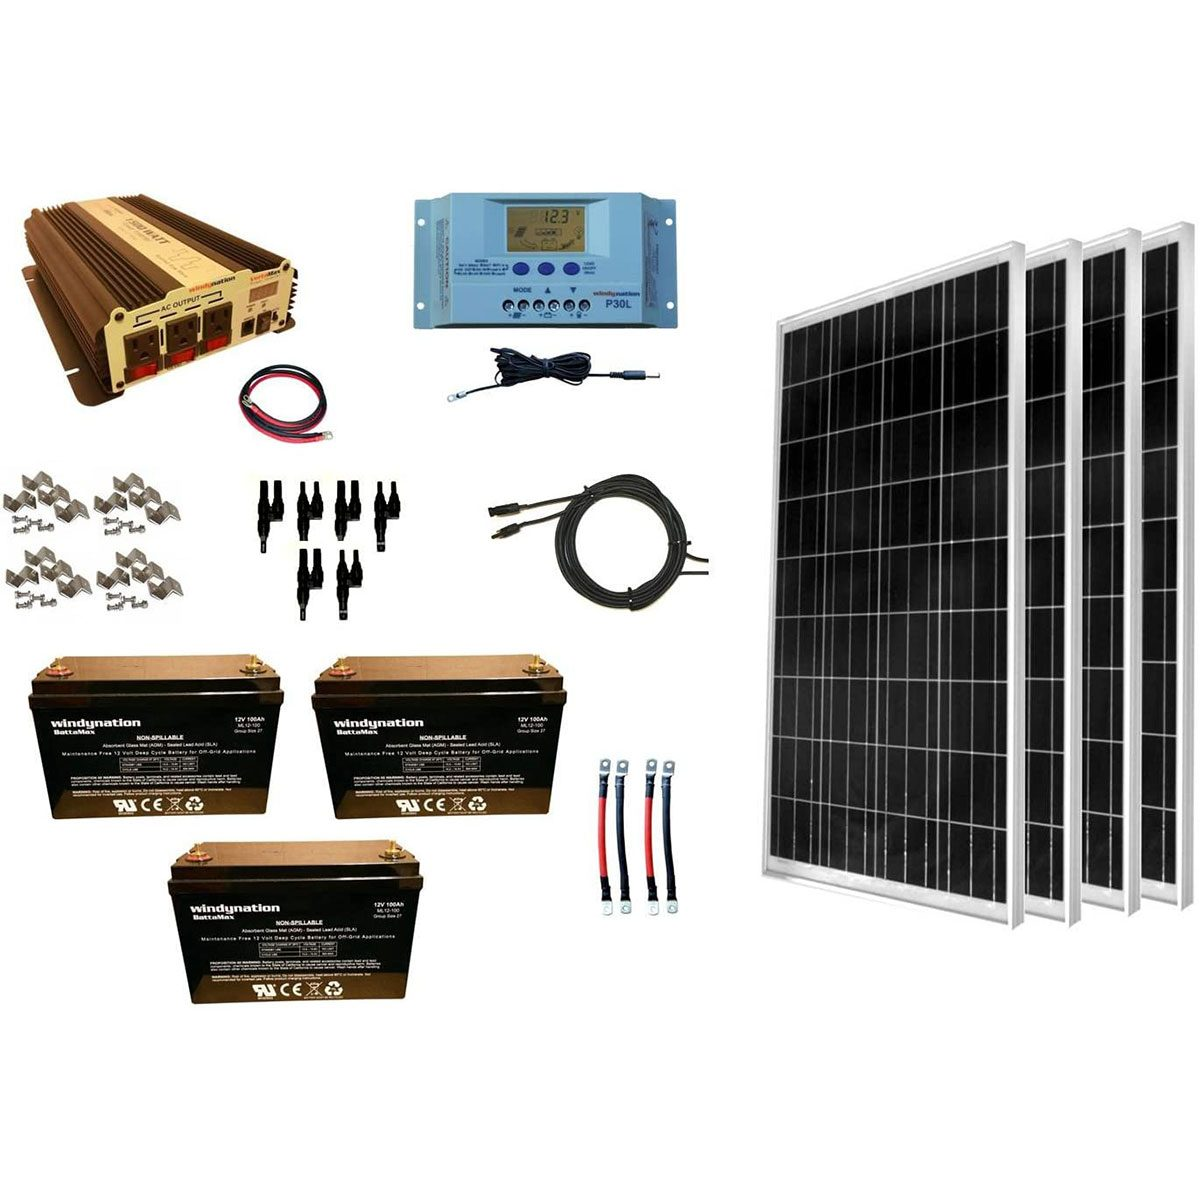 WindyNation solar kit